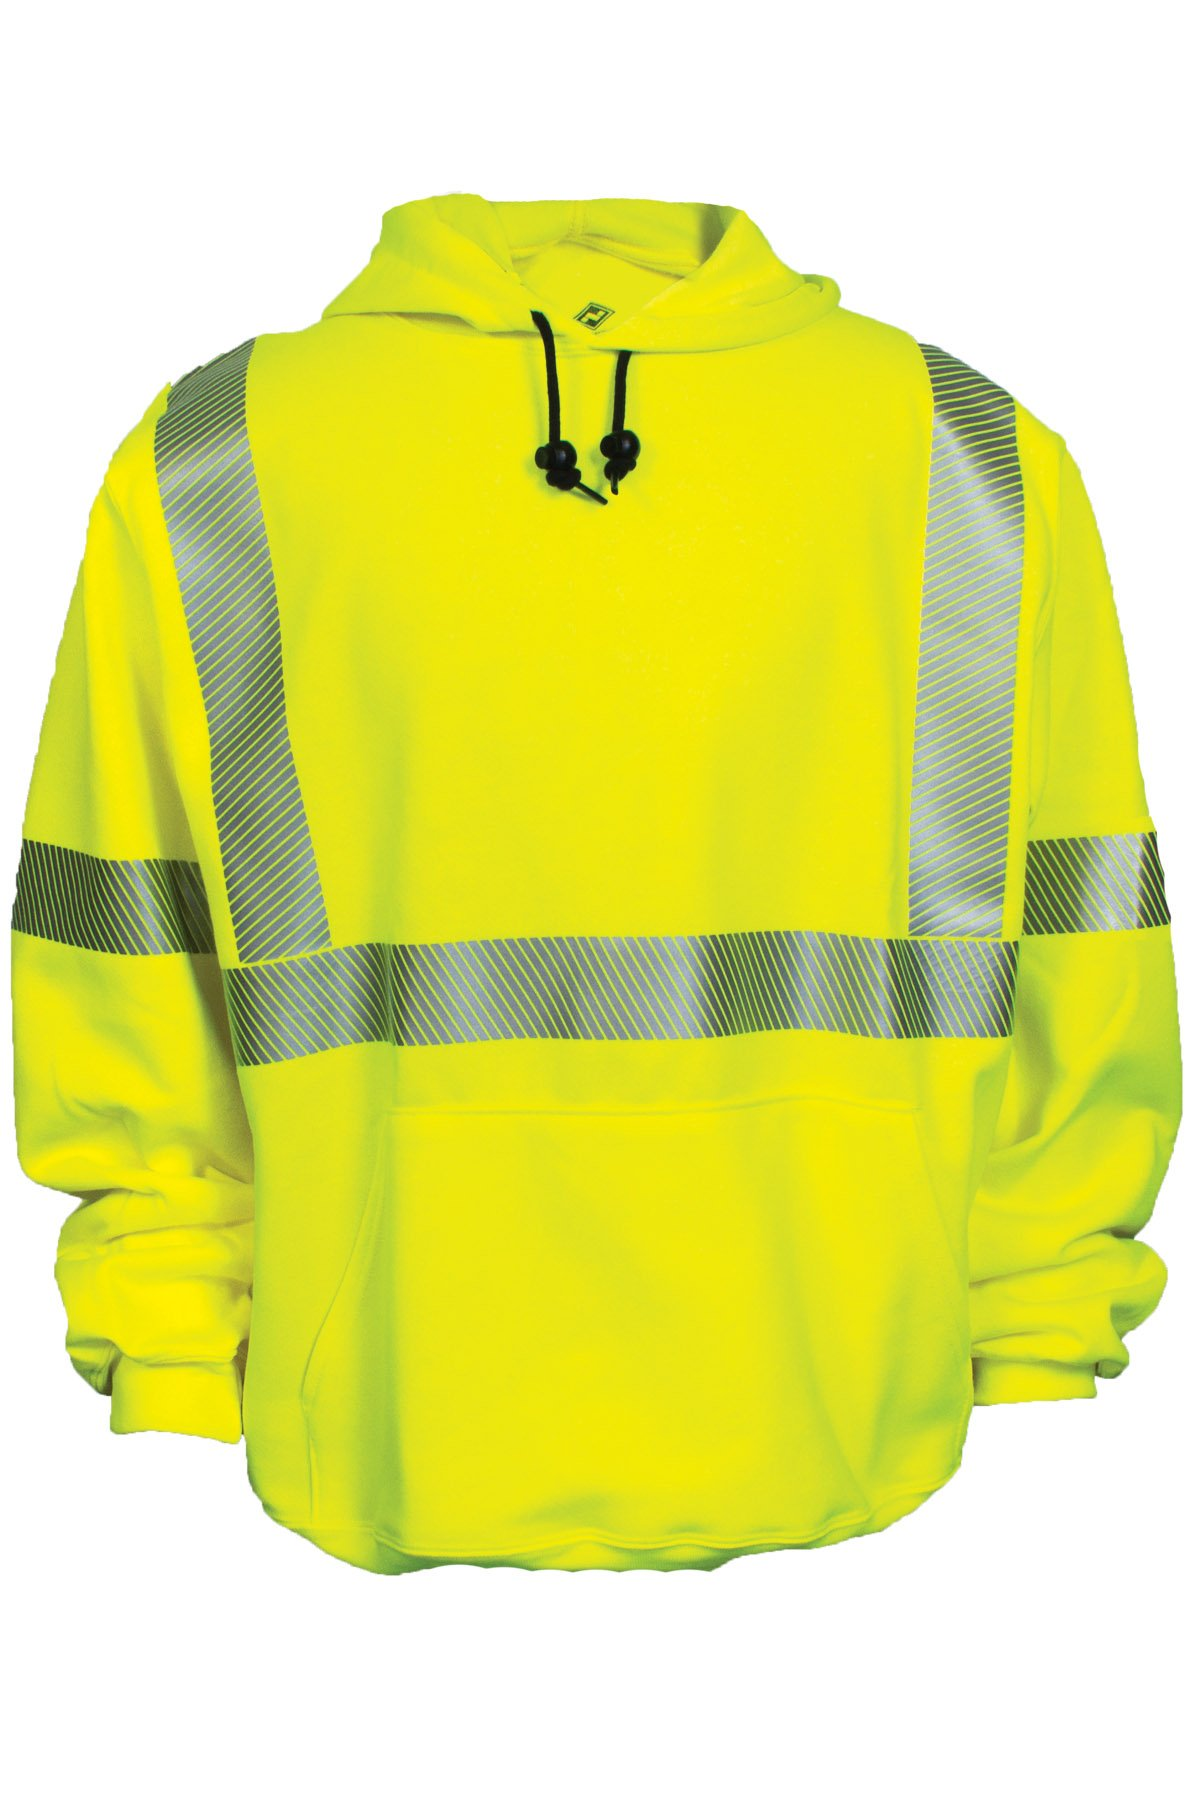 National Safety Apparel Flame Resistant (FR) Hi-Vis Hooded Pullover Sweatshirt, Class 3 (C21HC03C3MD)